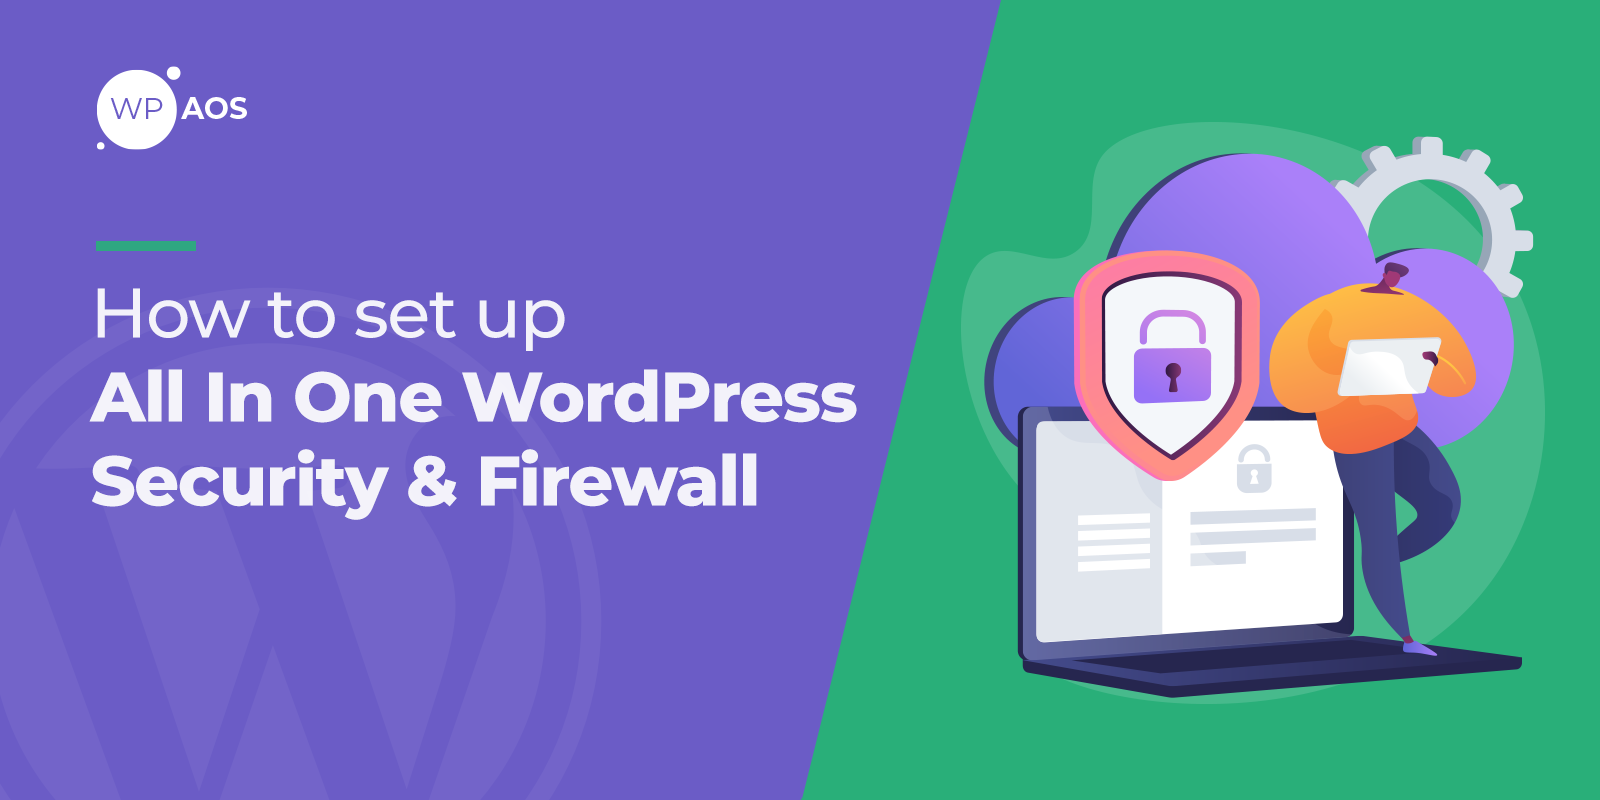 how-to-set-up-all-in-one-wordpress-security-firewall